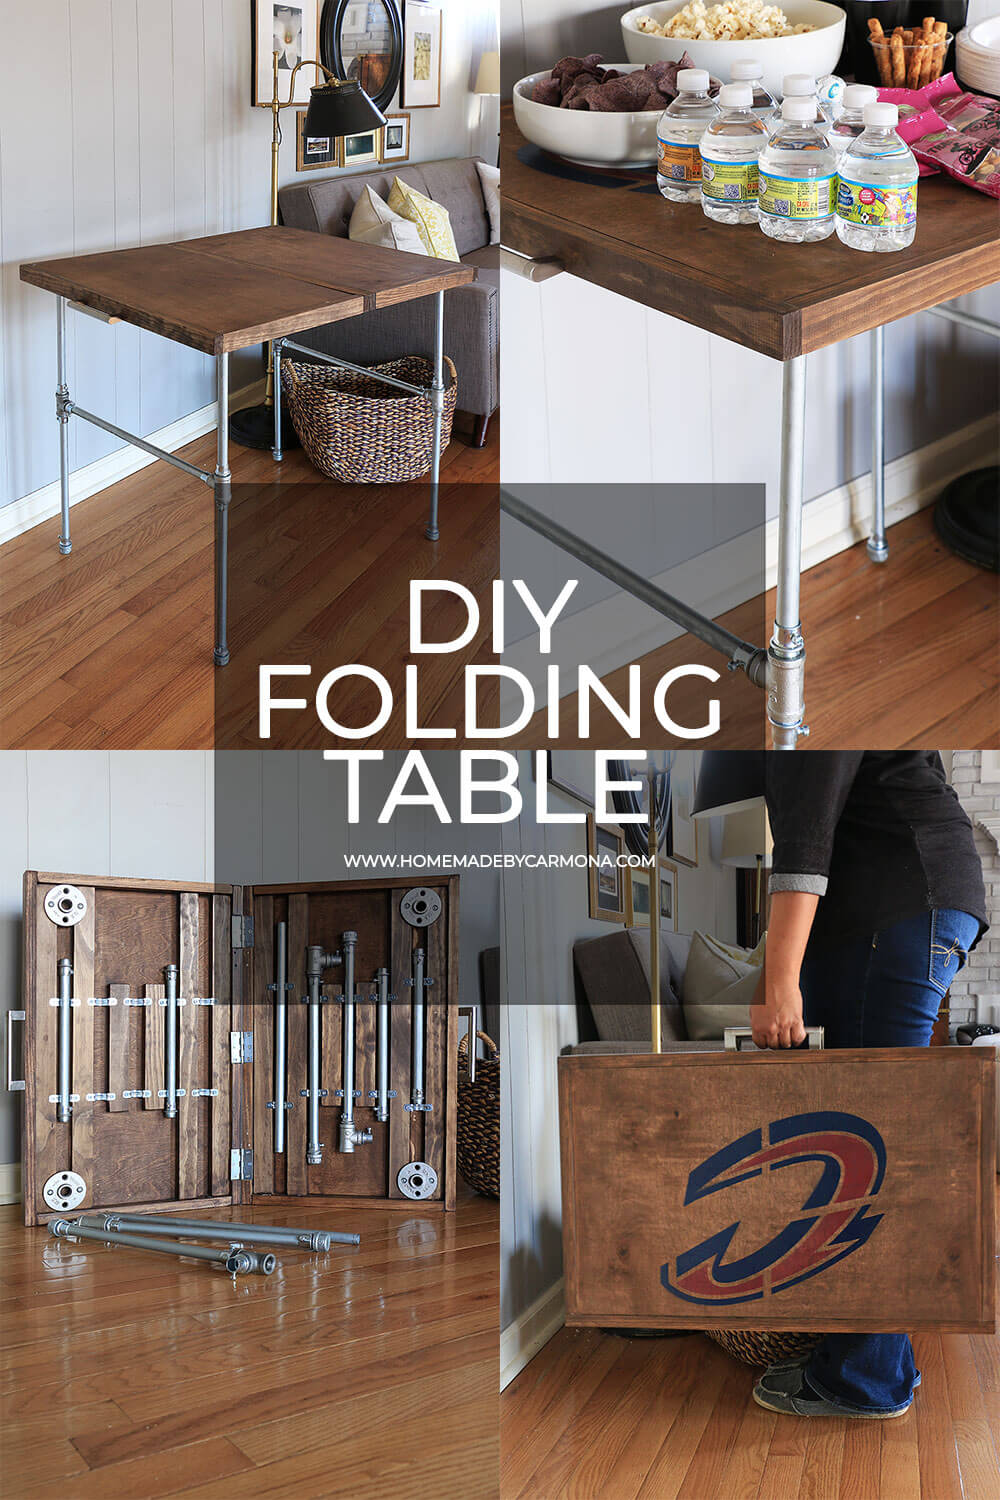 Diy Industrial Folding Table Home Made By Carmona